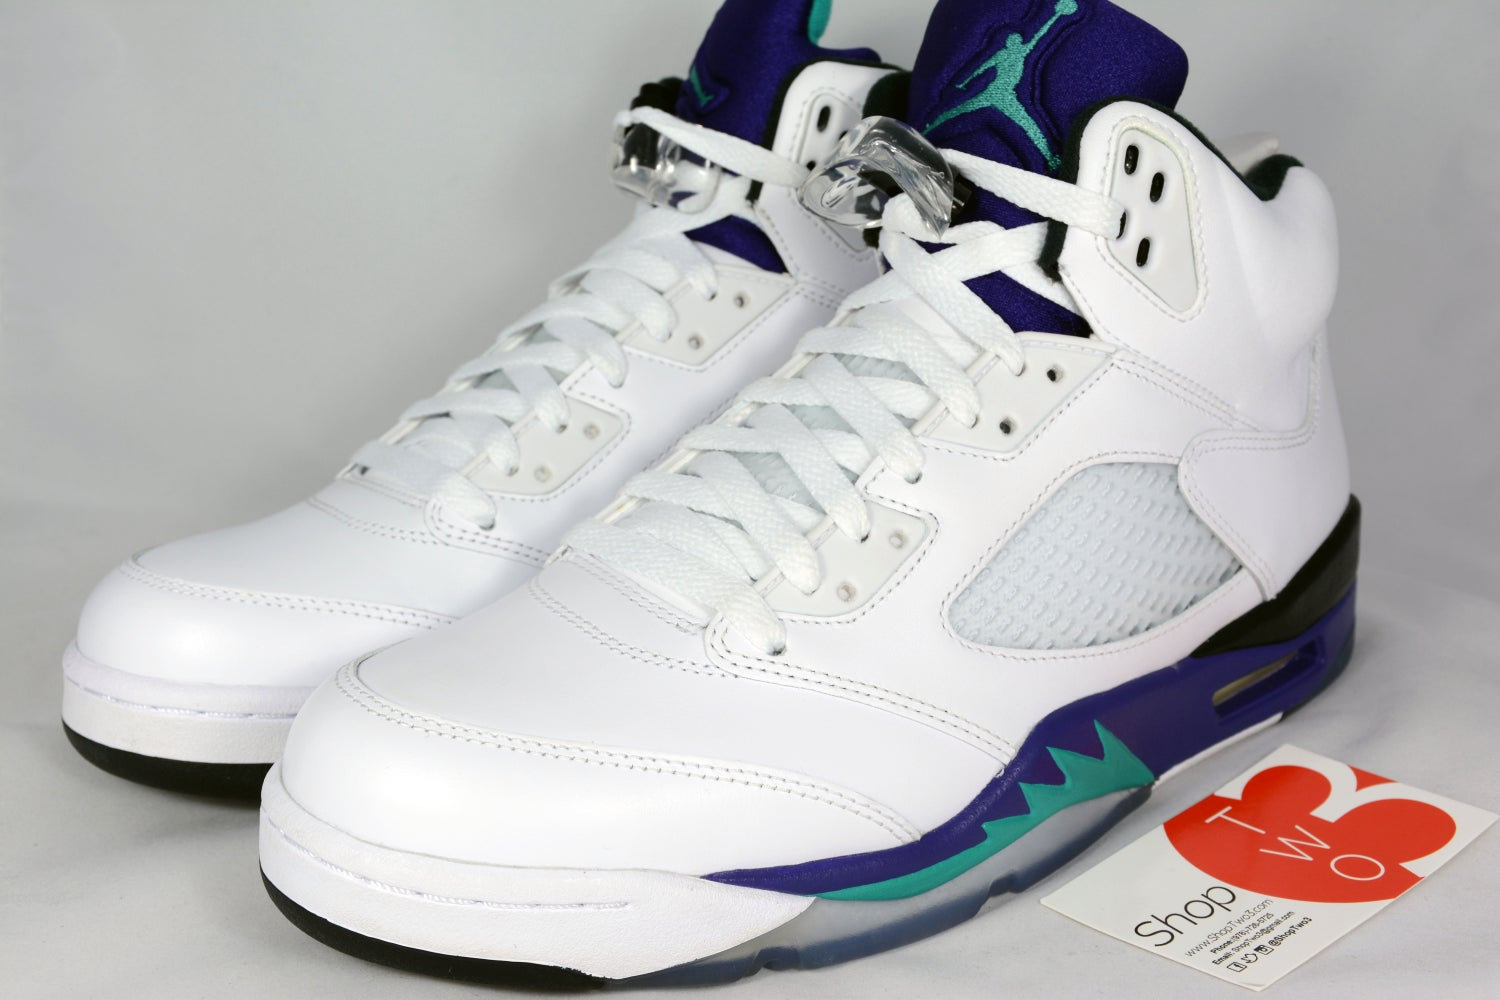 best service 445b4 011da Image of Air Jordan 5 Retro